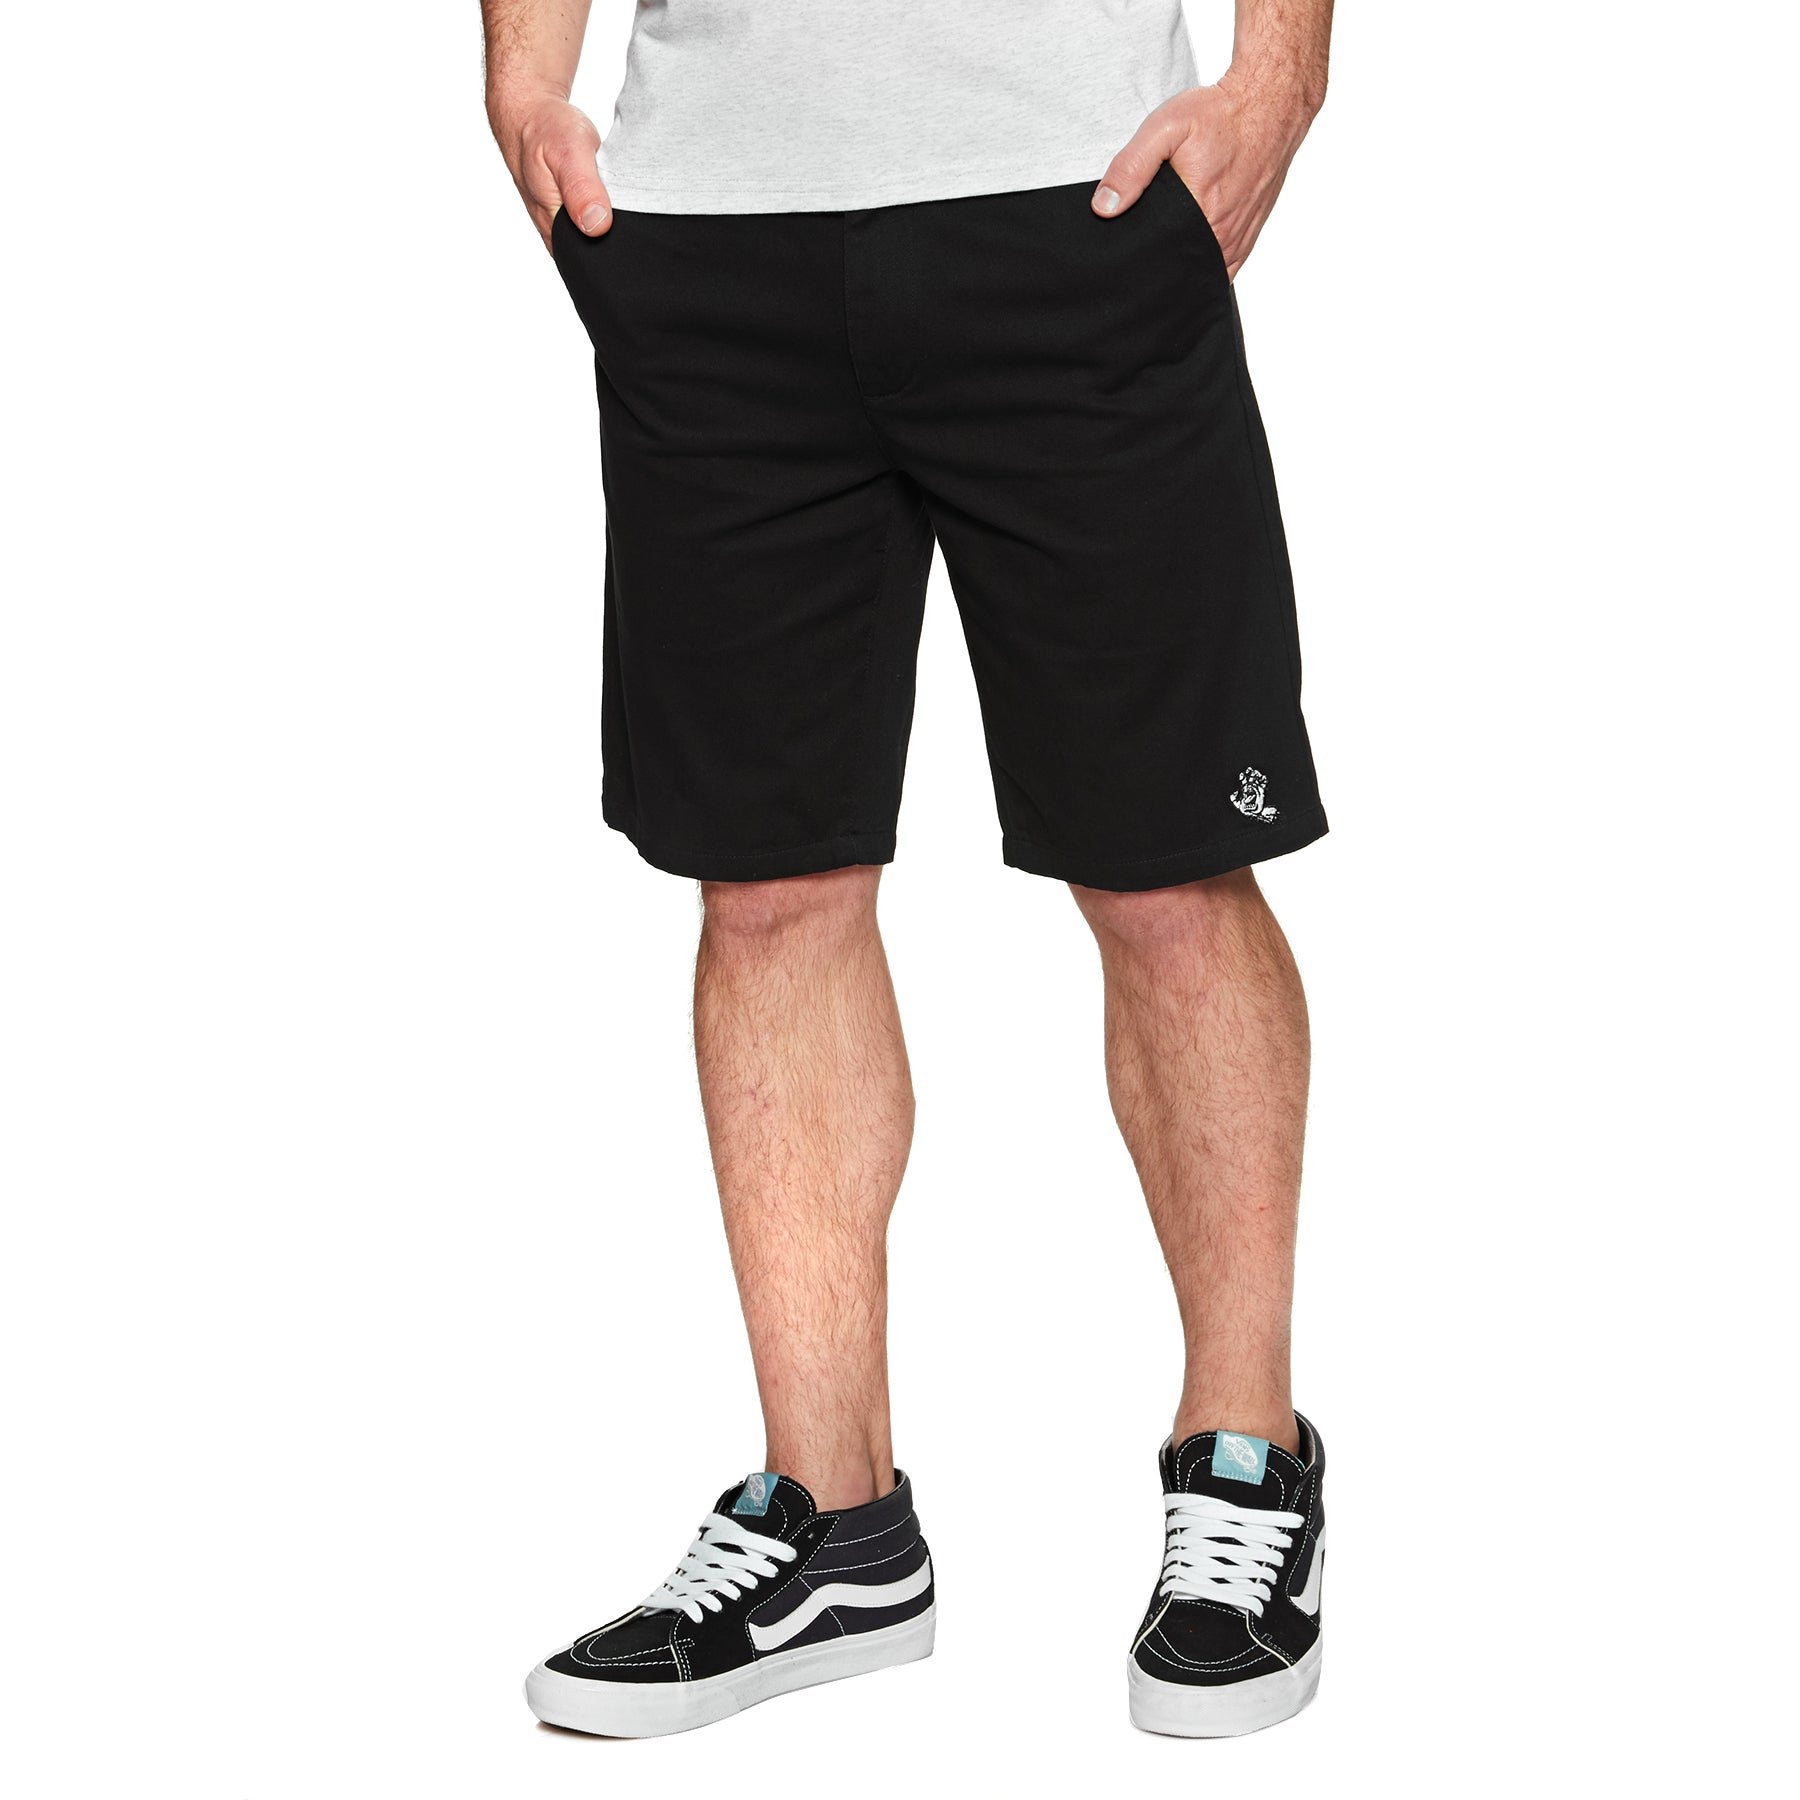 Shorts pour la Marche Santa Cruz Screaming Mono Hand - Black